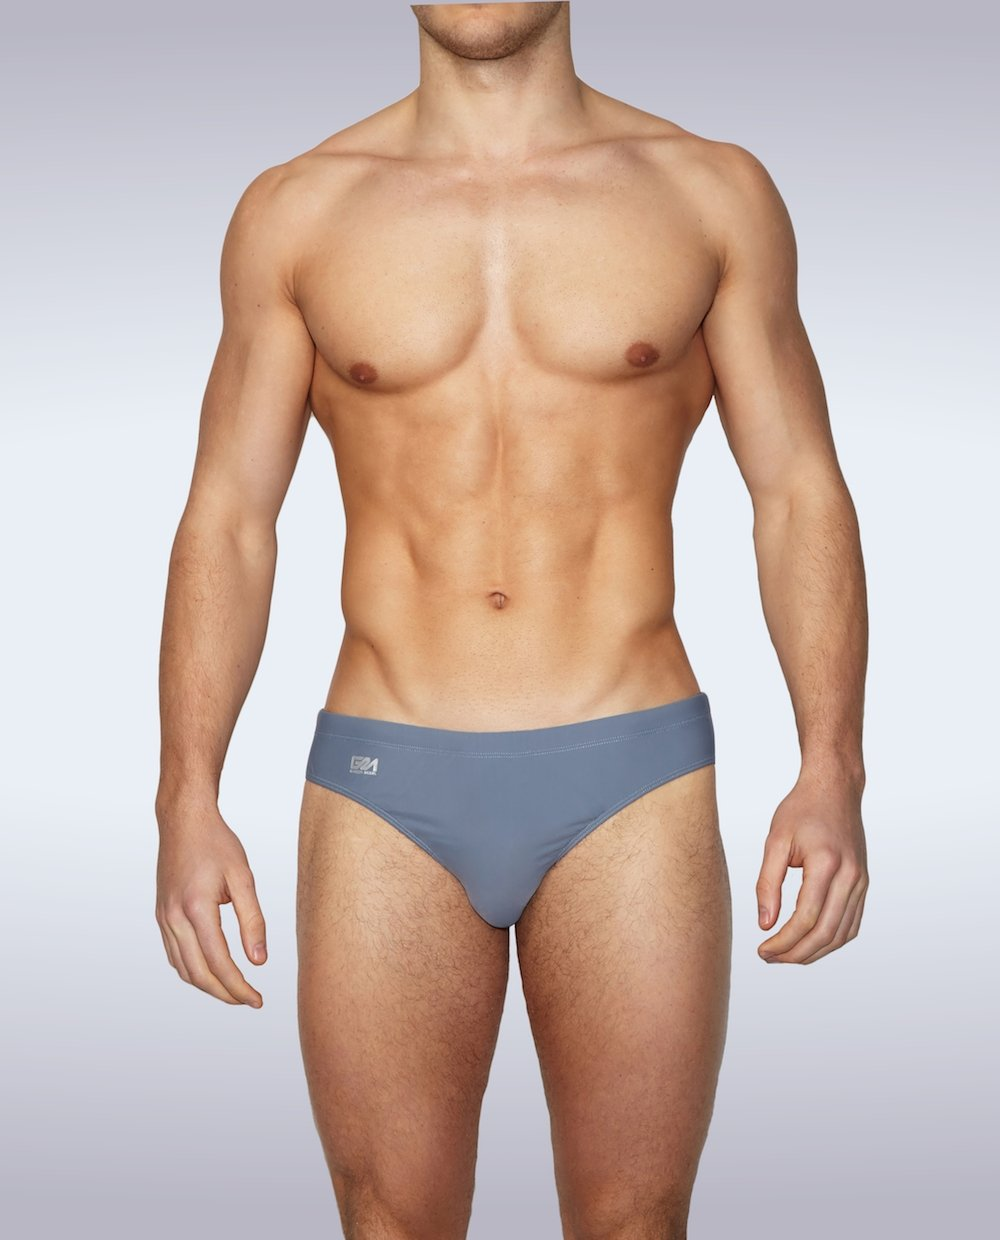 Storico Swim Brief - Garçon Underwear sexy men's underwear Swim Brief Garçon Underwear